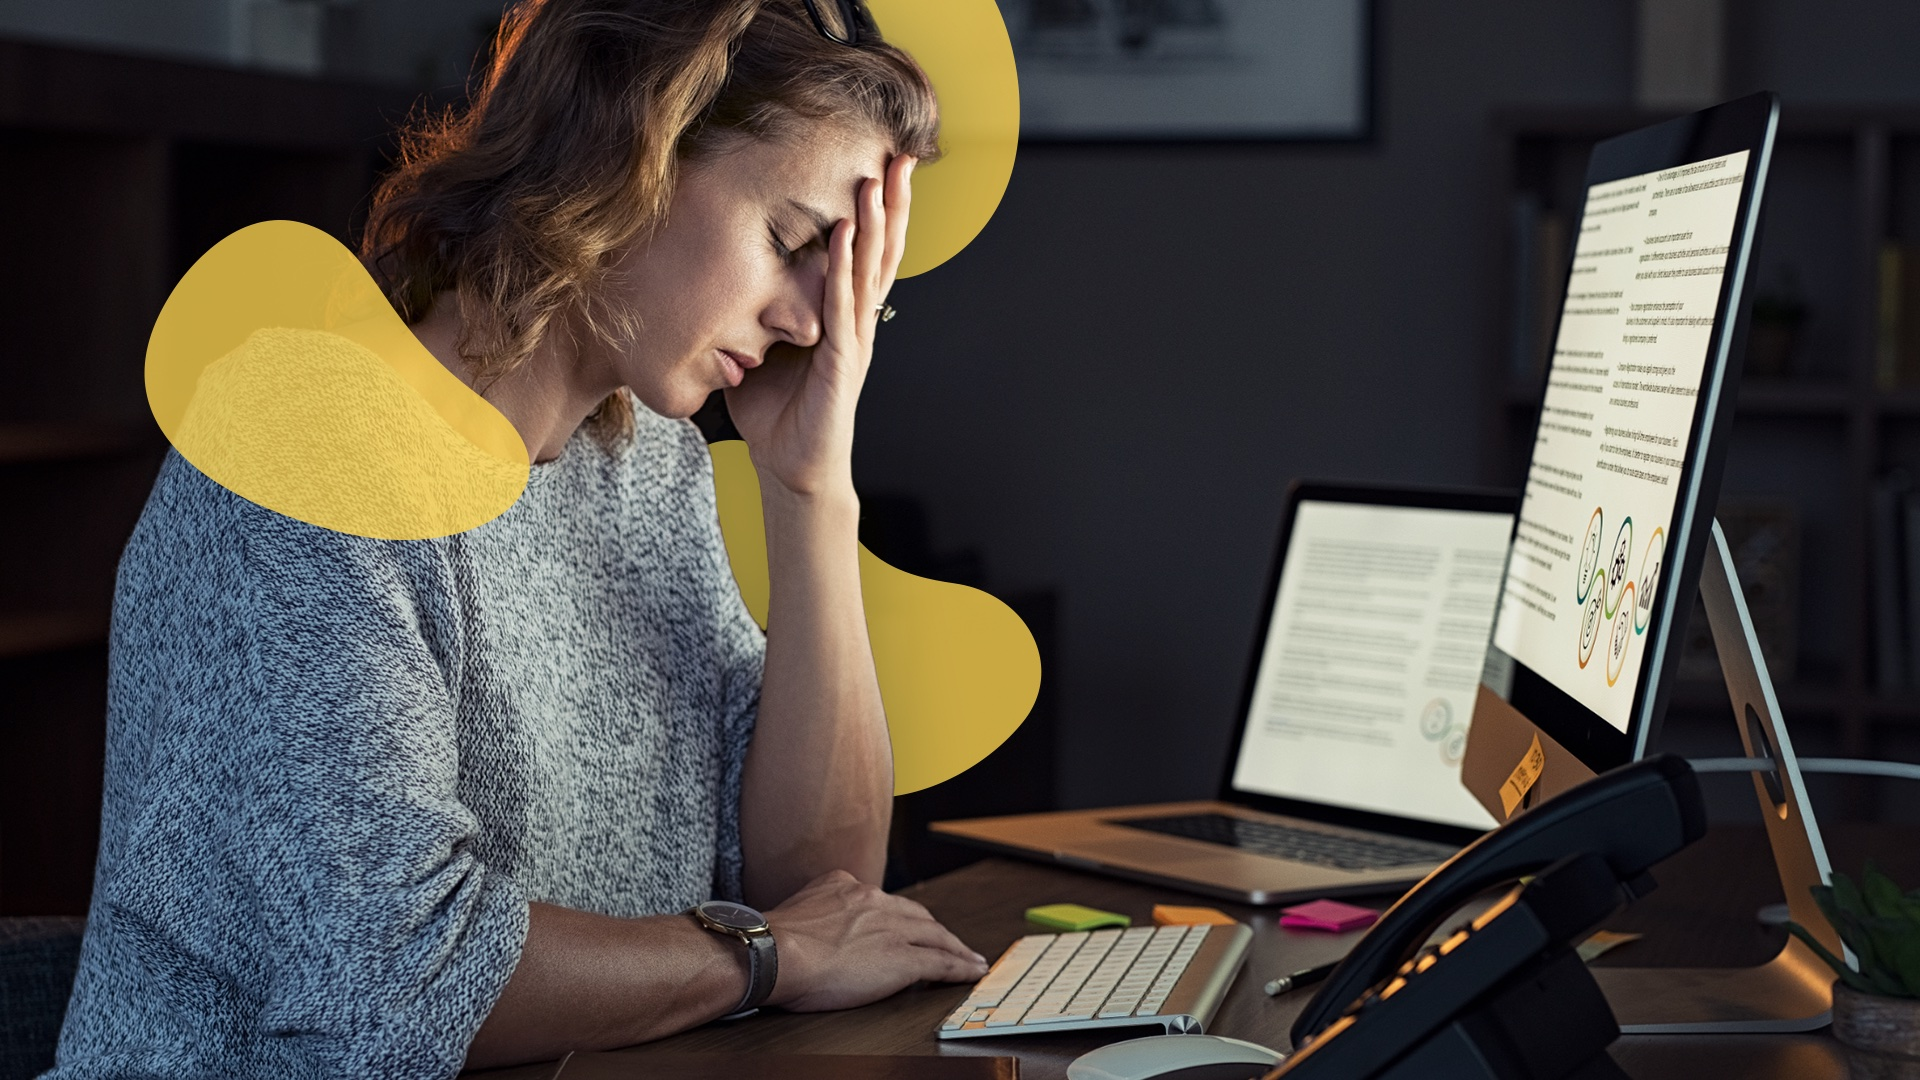 THE HARMFUL EFFECTS OF INCREASED SCREEN TIME